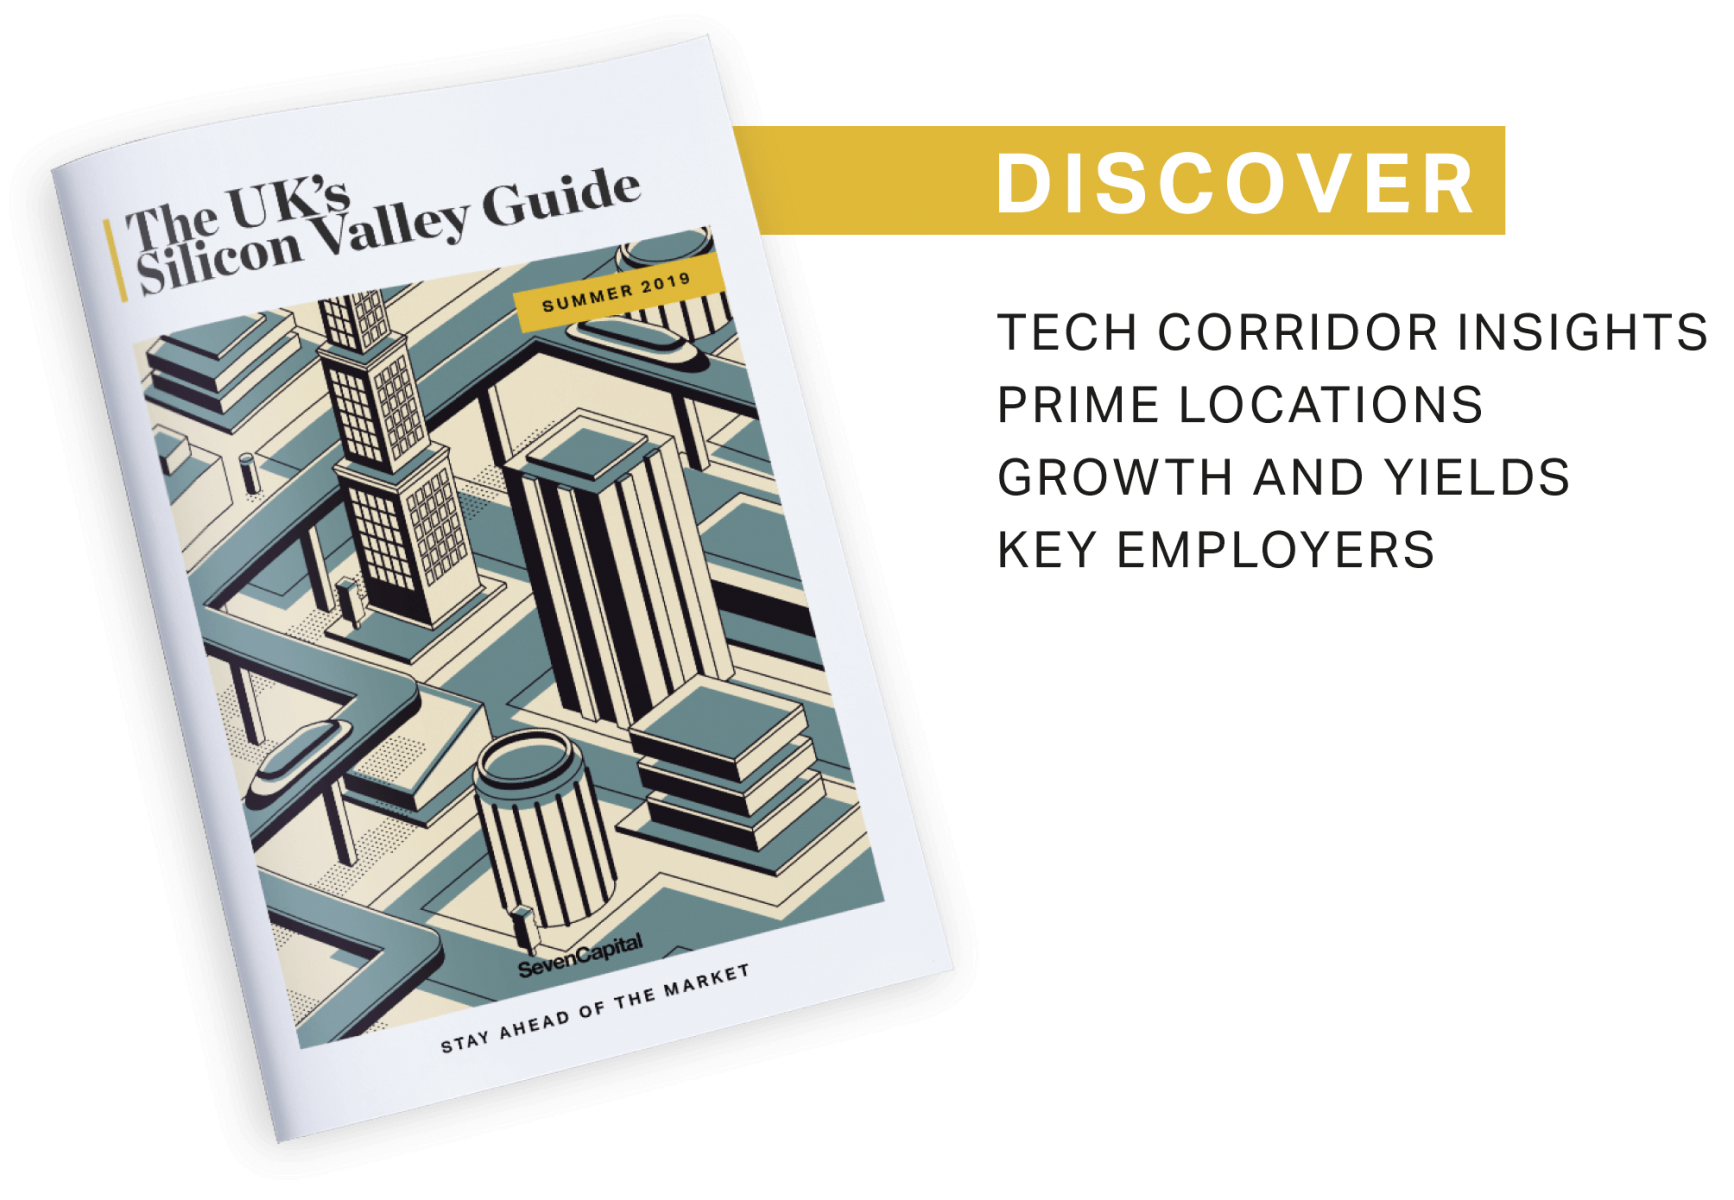 Silicon-Valley-UK Property Guide